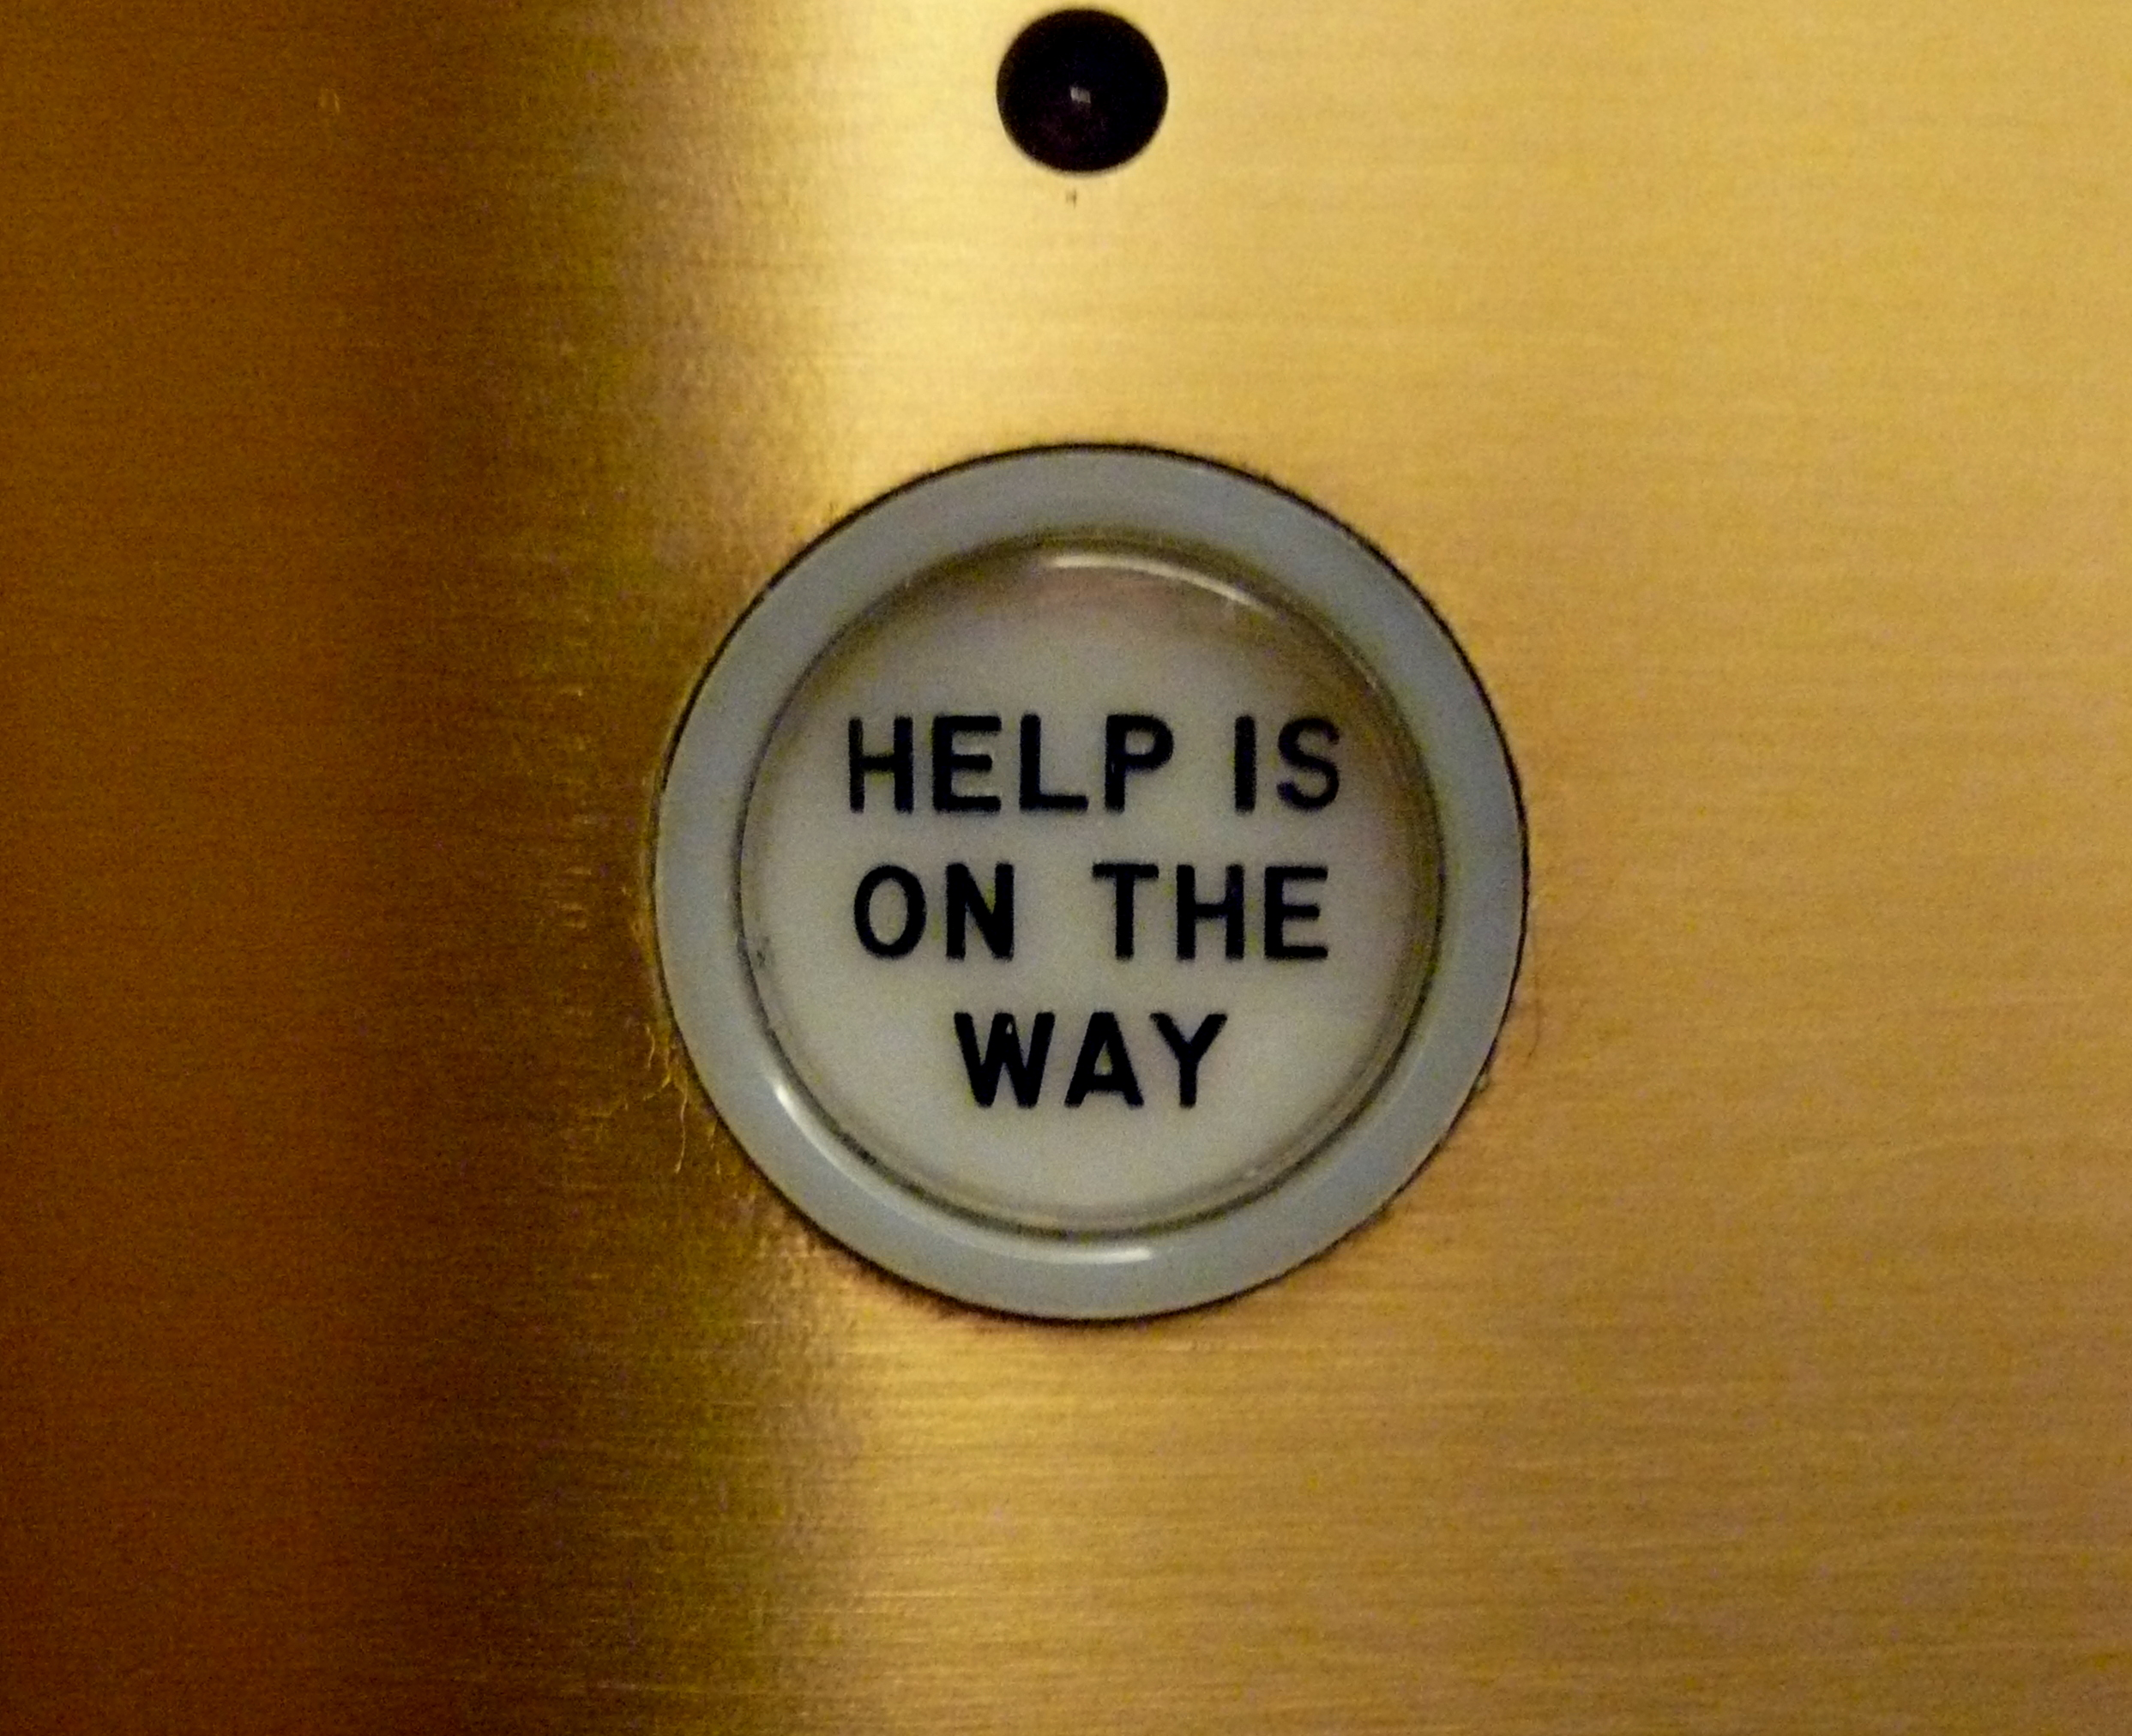 2496308570 6c552c24fe o Help is on the way, elevator, Chicago Tribune, Chicago, IL.JPG found on Flickr Funny Picture